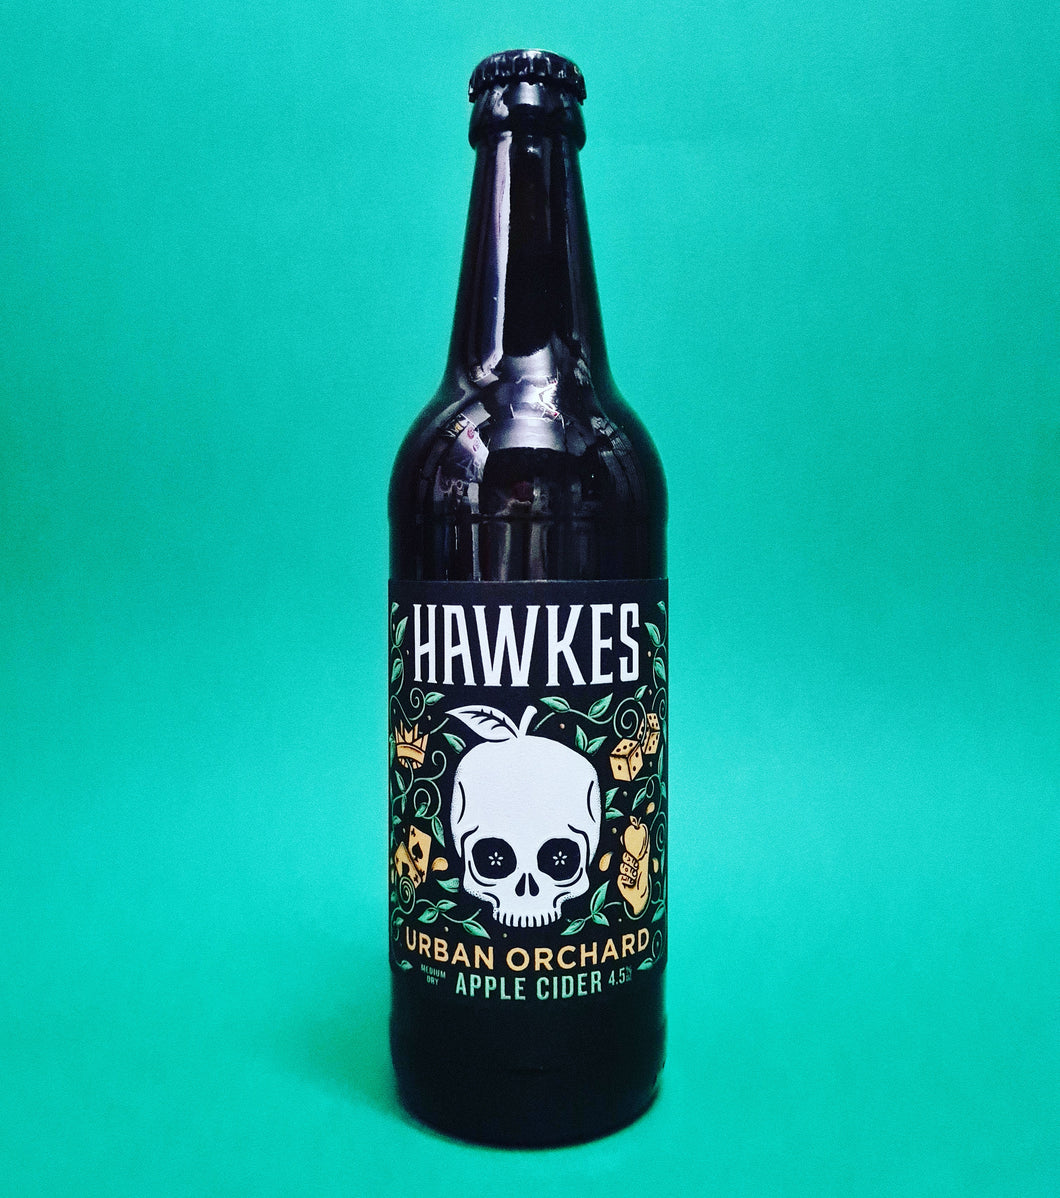 <p>Hawkes<br>Urban Orchard Cider</p>